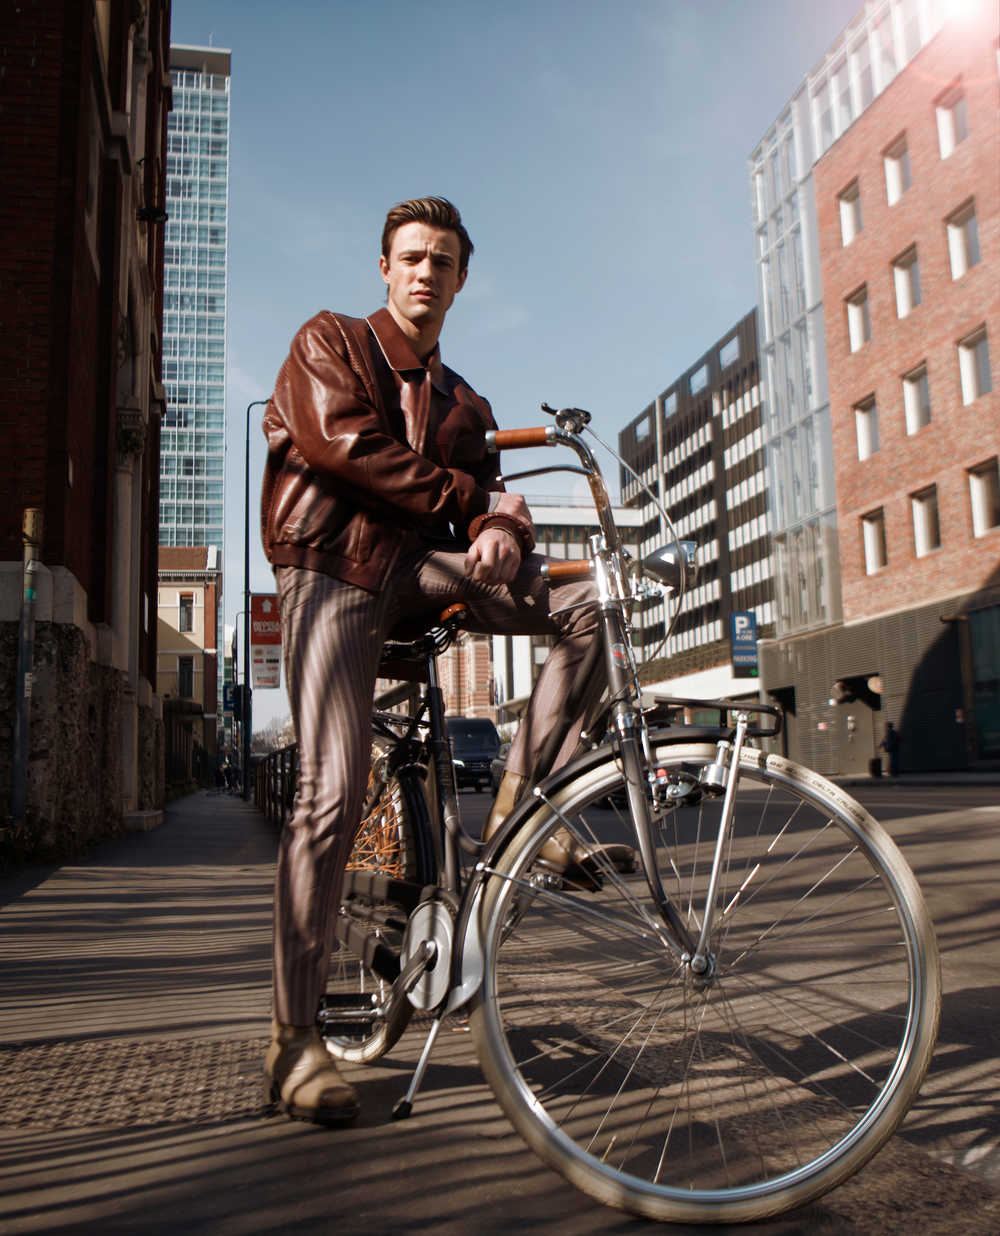 L'Officiel Hommes - Cameron Dallas to Milan - Photo by Frederic Monceau - Grooming by Massimo Serini